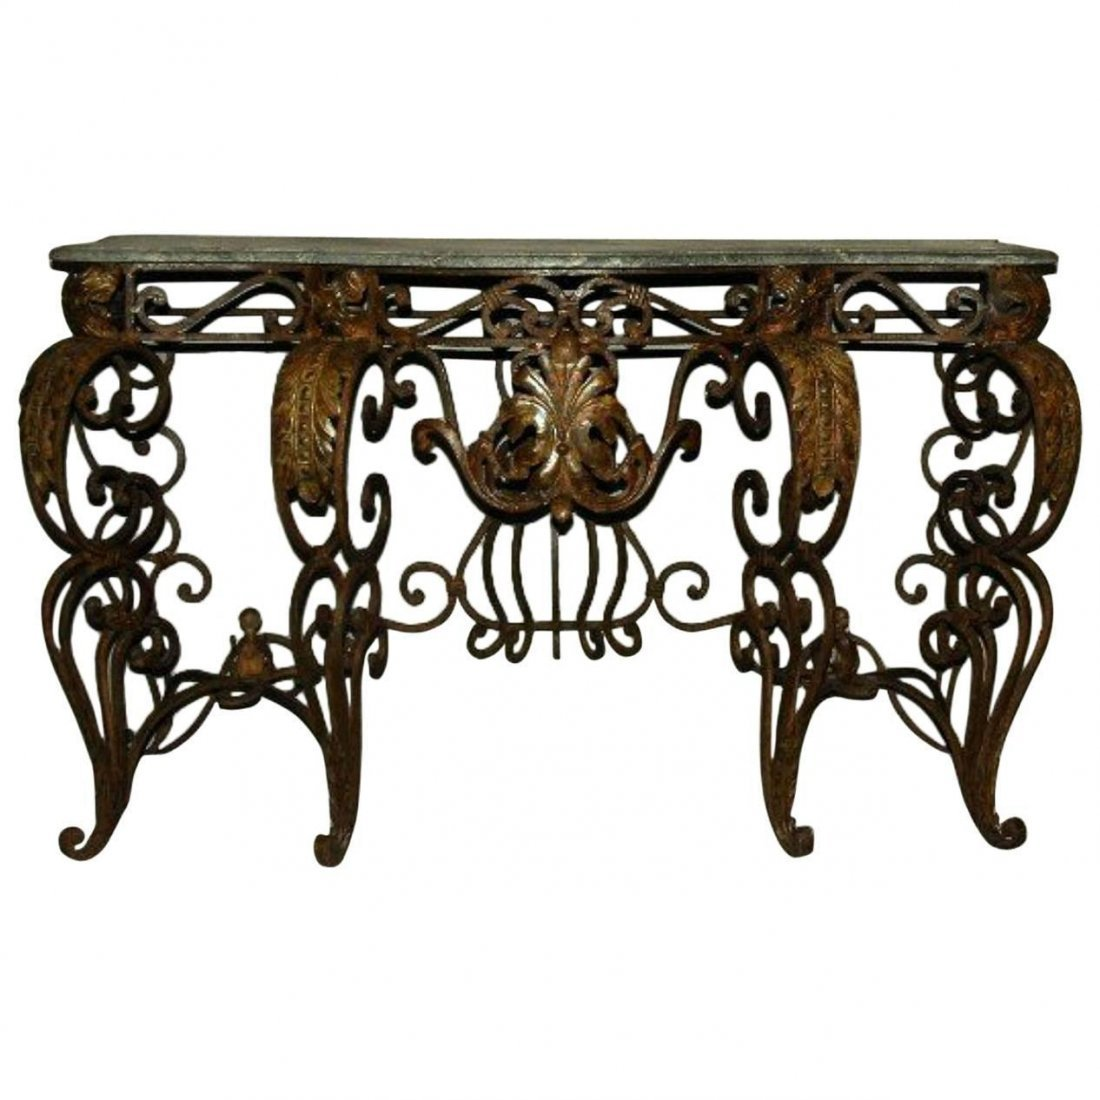 "Wrought iron marble top console table. H: 33"" W: 58"" D:"